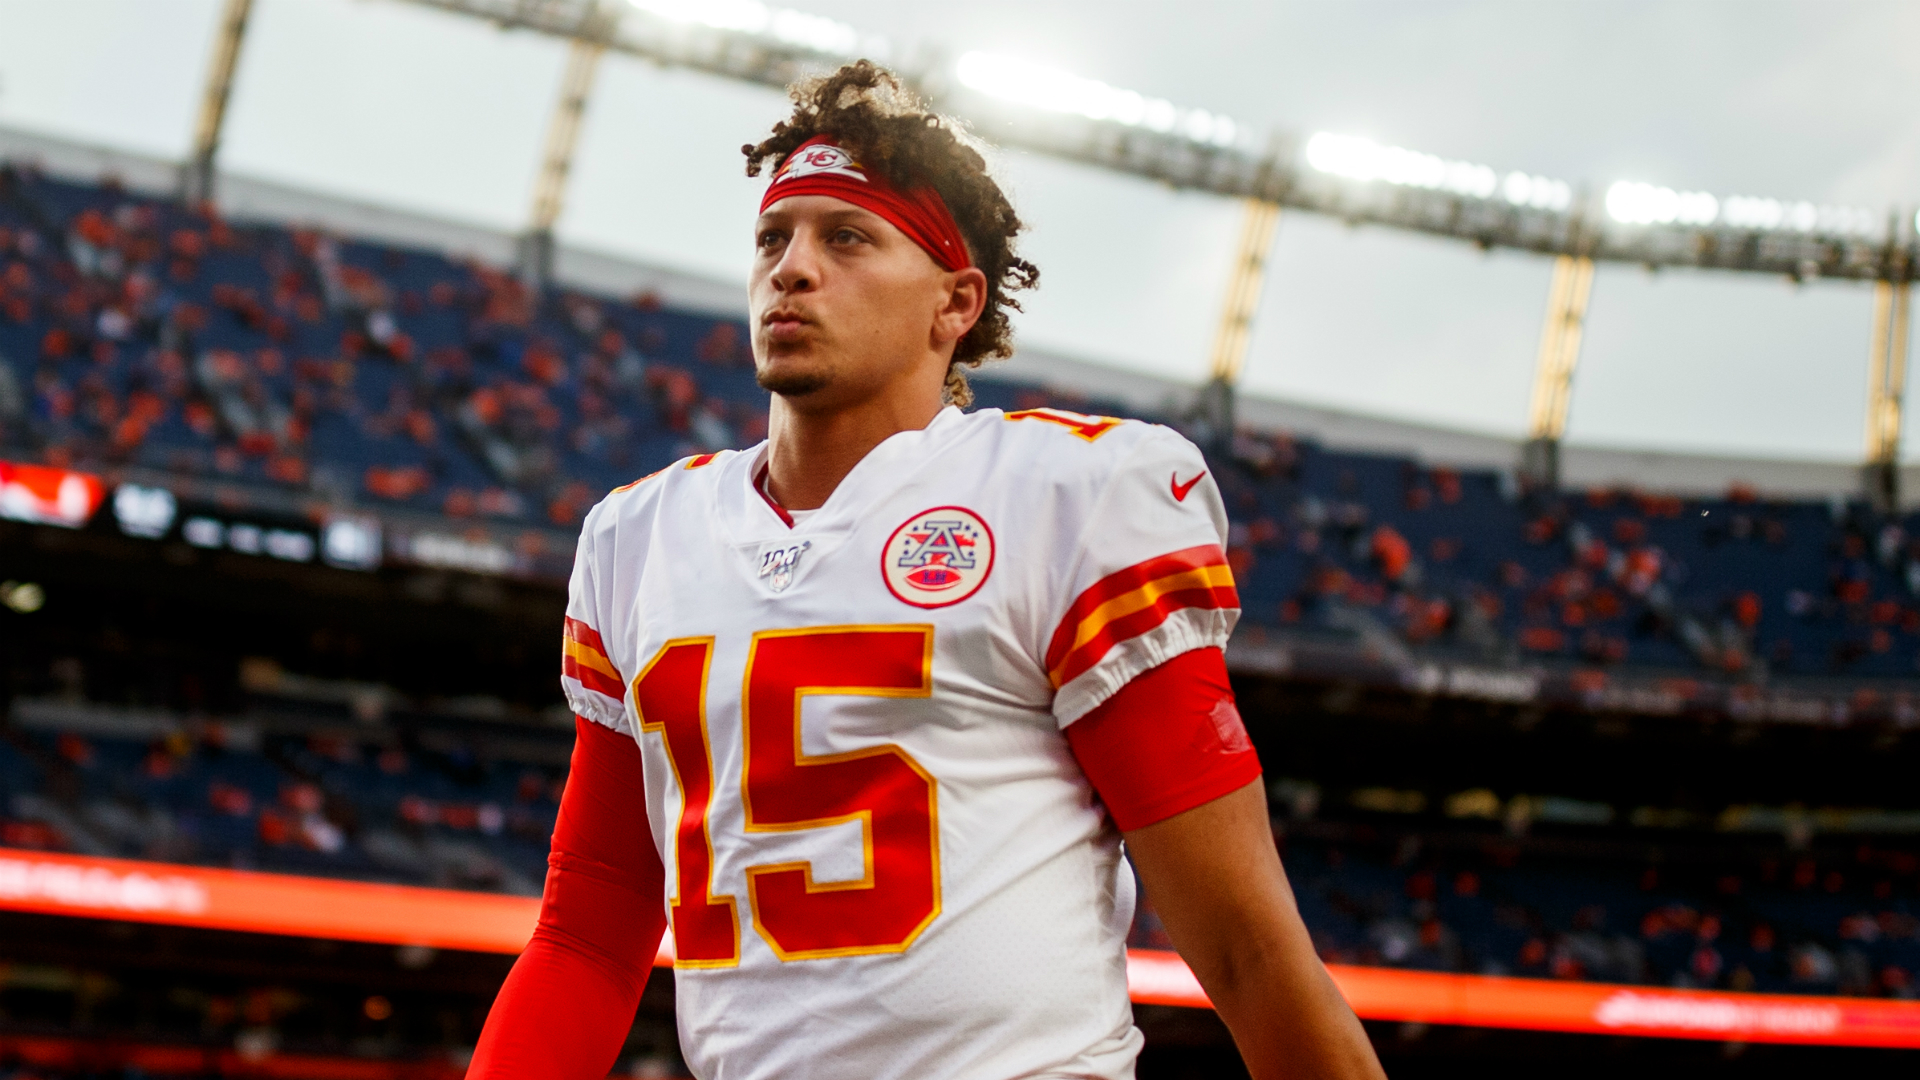 NFL news and notes: Chiefs, Mahomes receive good news; 17-game schedule may be on horizon